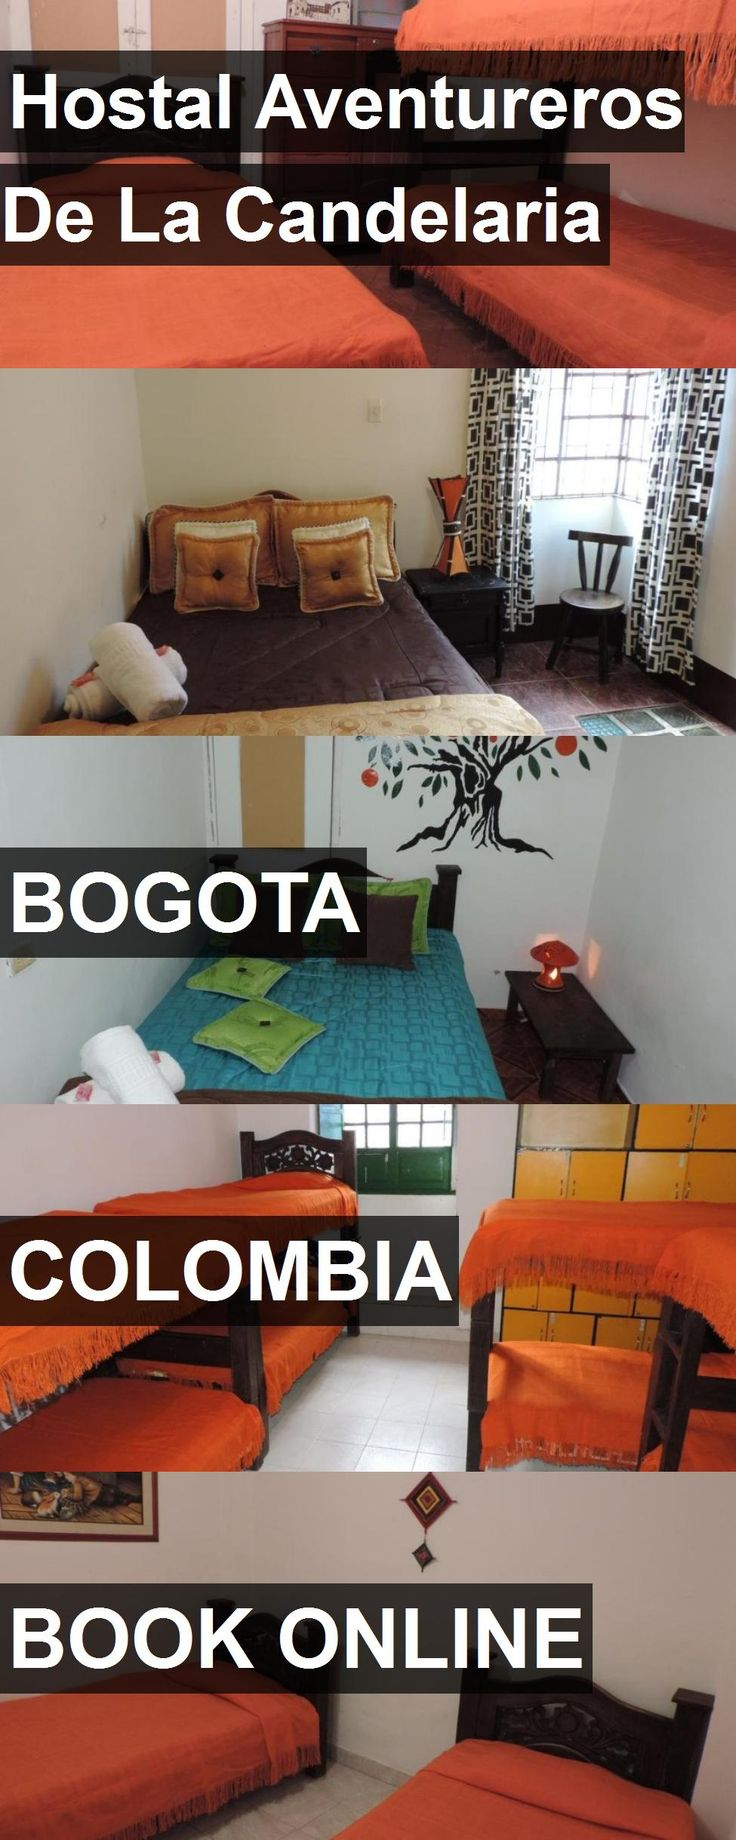 Hotel Hostal Aventureros De La Candelaria in Bogota, Colombia. For more information, photos, reviews and best prices please follow the link. #Colombia #Bogota #HostalAventurerosDeLaCandelaria #hotel #travel #vacation